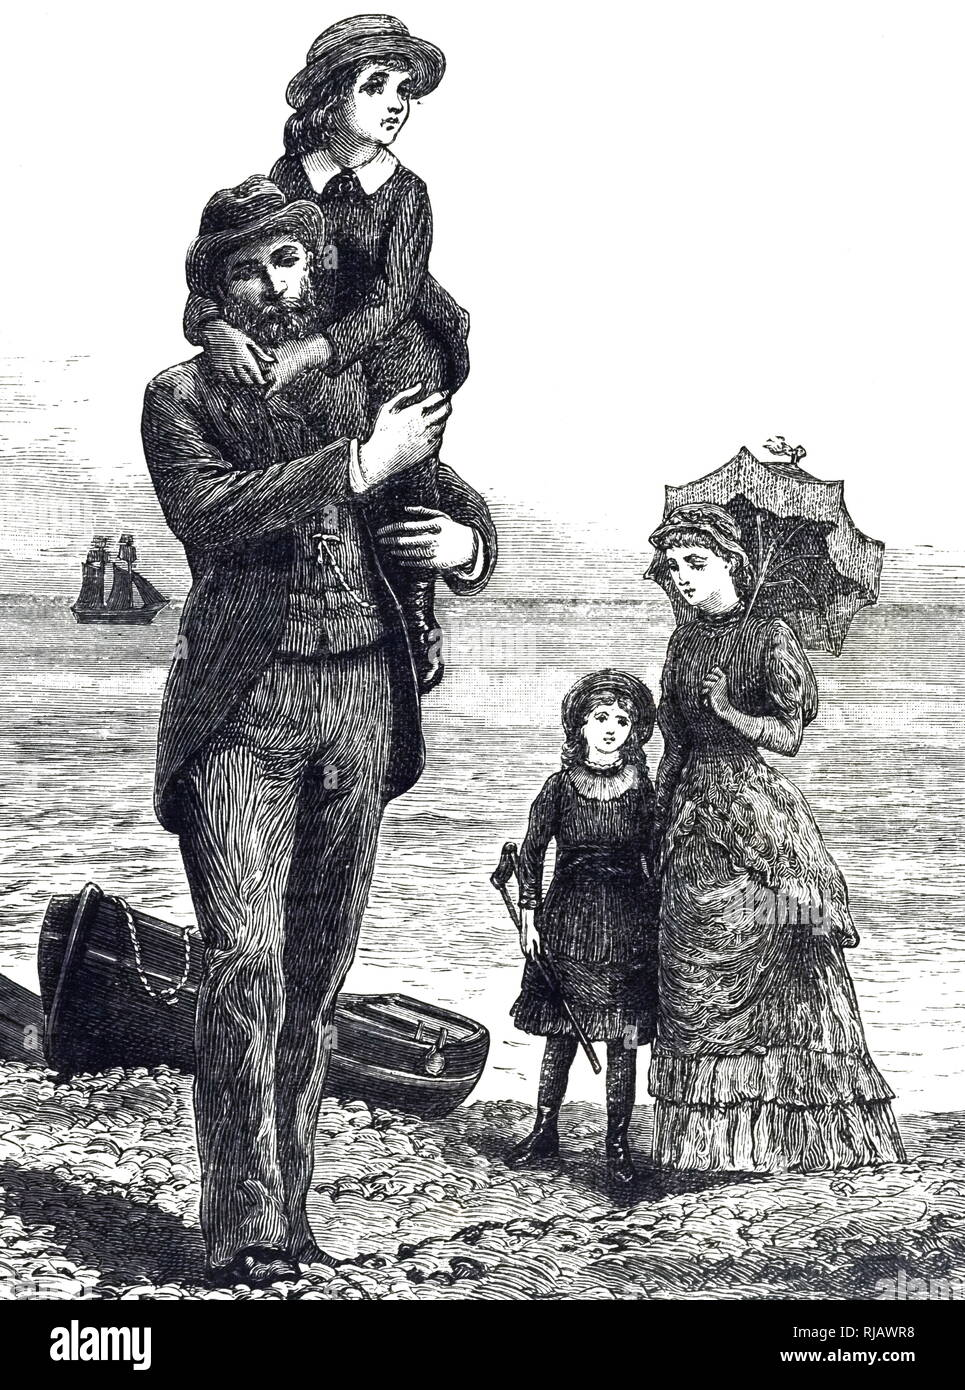 An engraving depicting a family day at the seaside. Illustrated by Everard Hopkins (1860-1928) a British illustrator. Dated 19th century - Stock Image